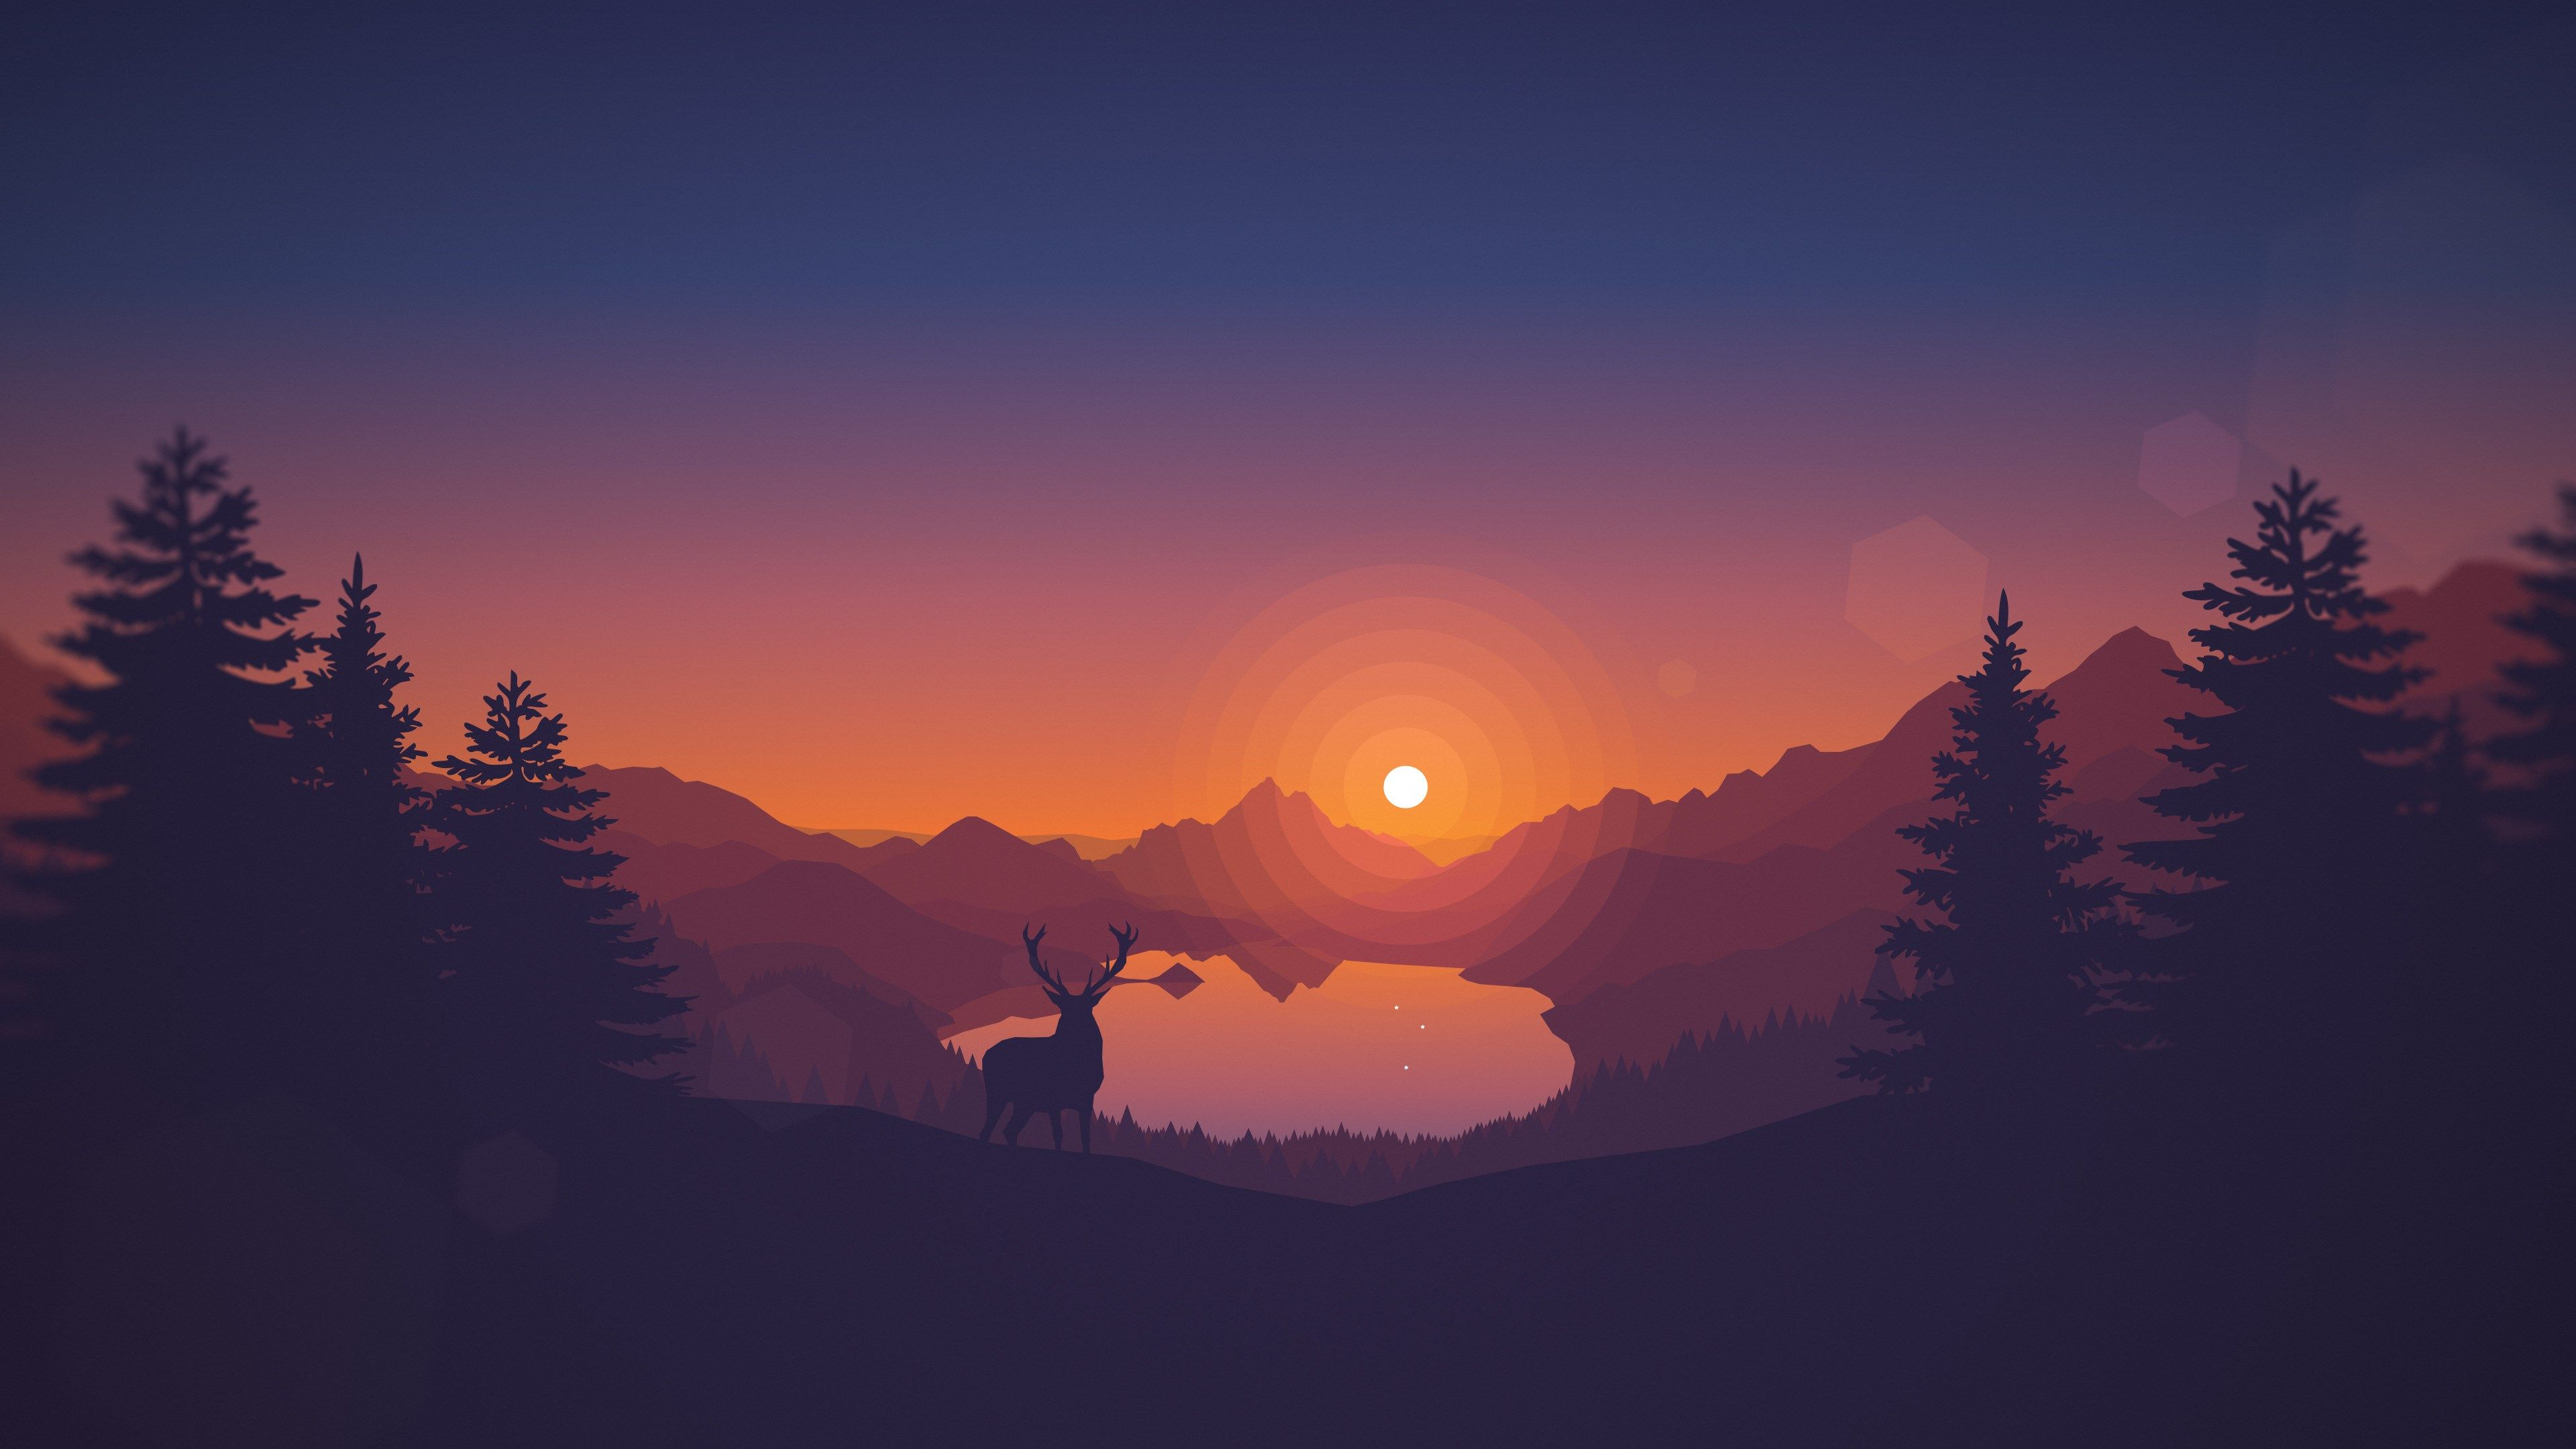 3840x2160 Free Desktop Backgrounds For Firewatch Landscape Wallpaper Sunset Wallpaper Minimalist Wallpaper